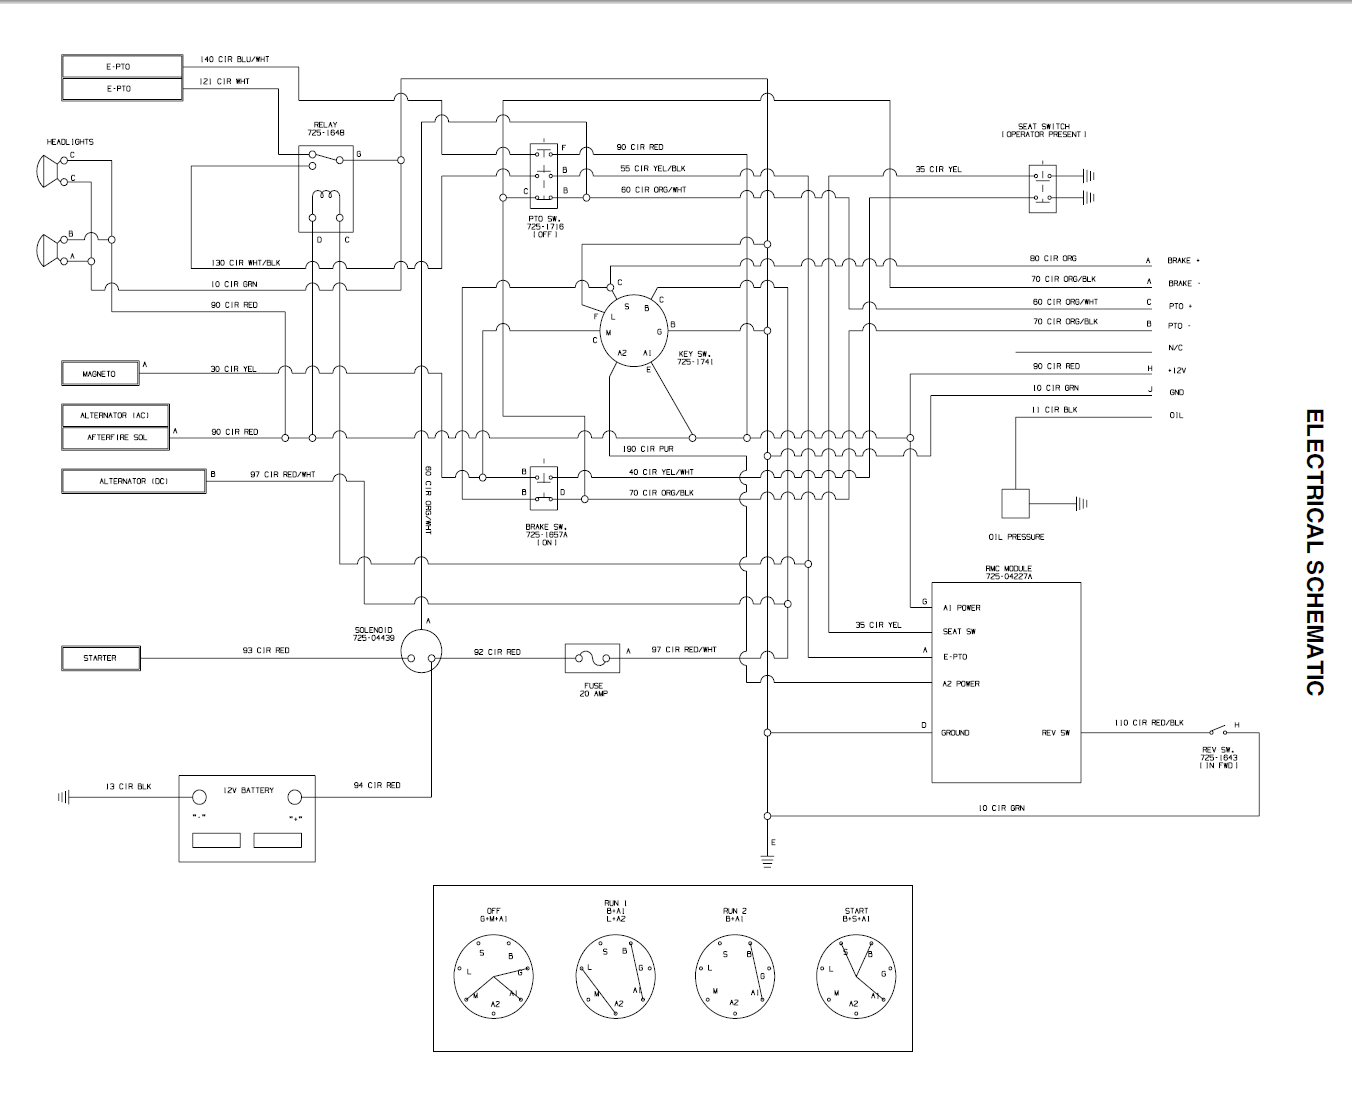 Electric Pto Switch Wiring Diagram | Wiring Diagram - Cub Cadet Pto Switch Wiring Diagram